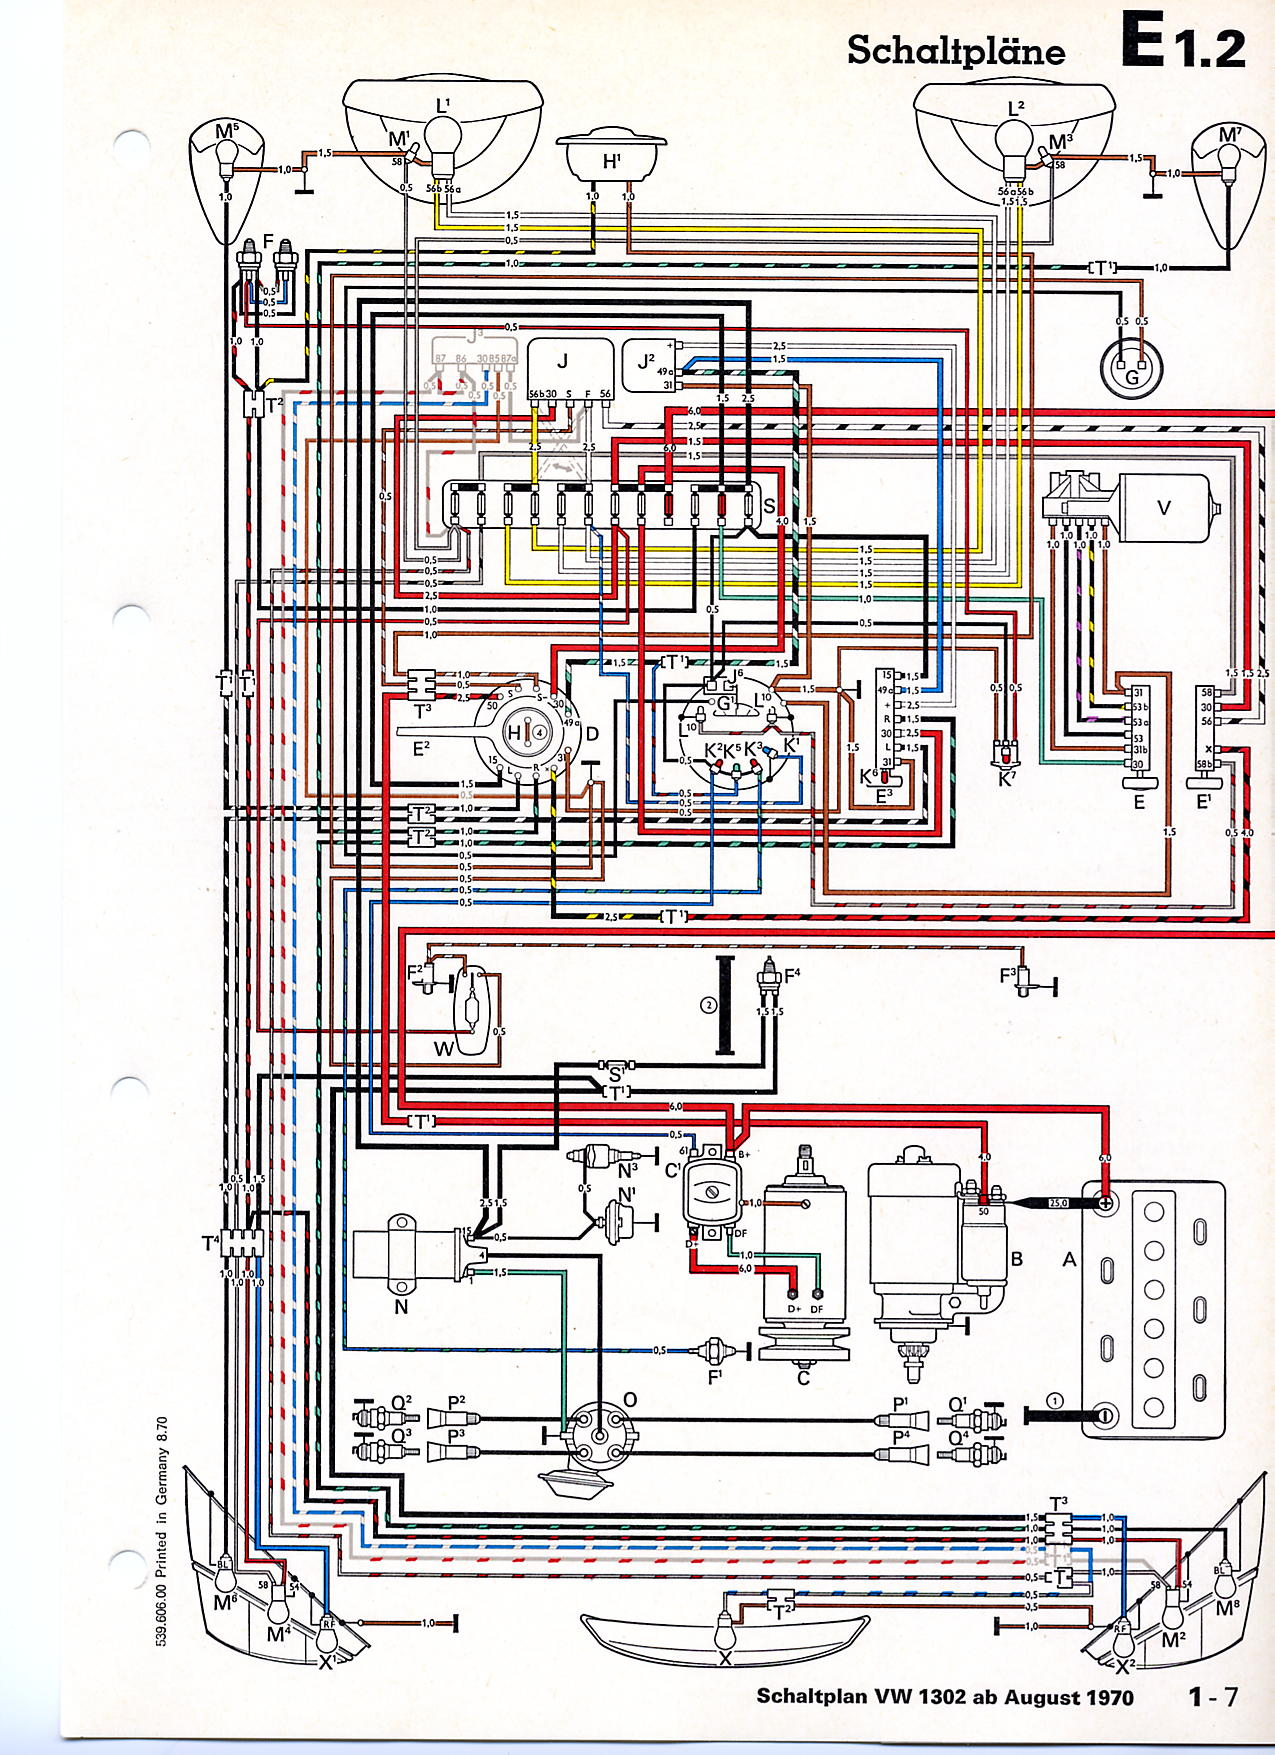 1302_from_August_1970_without_test_central_socket?w=1000 72 bug wiring diagram